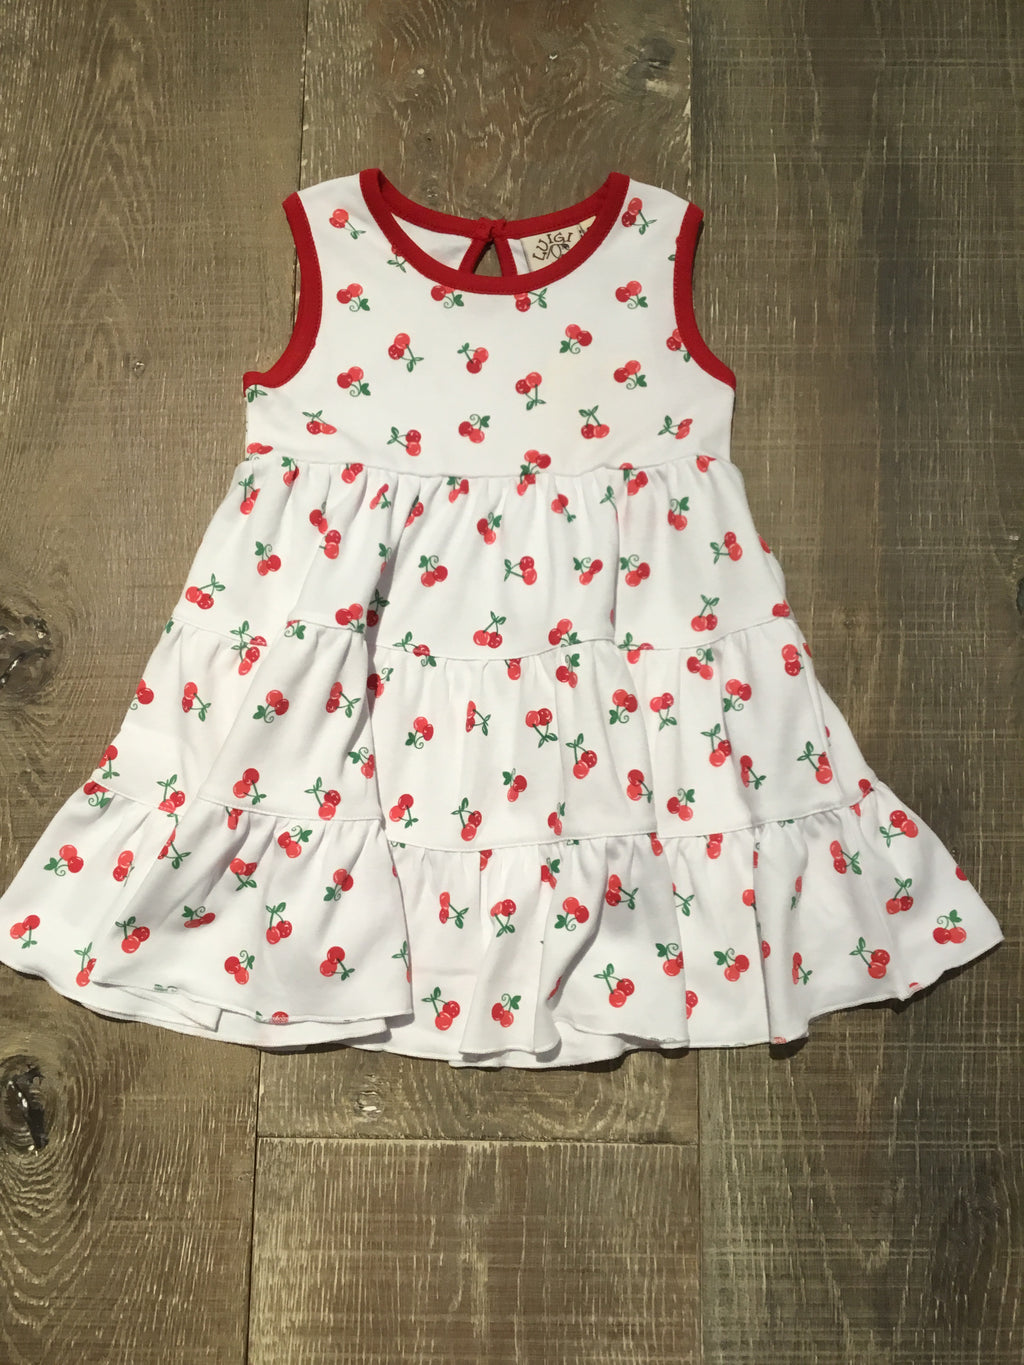 Cherry 3 Tier Dress